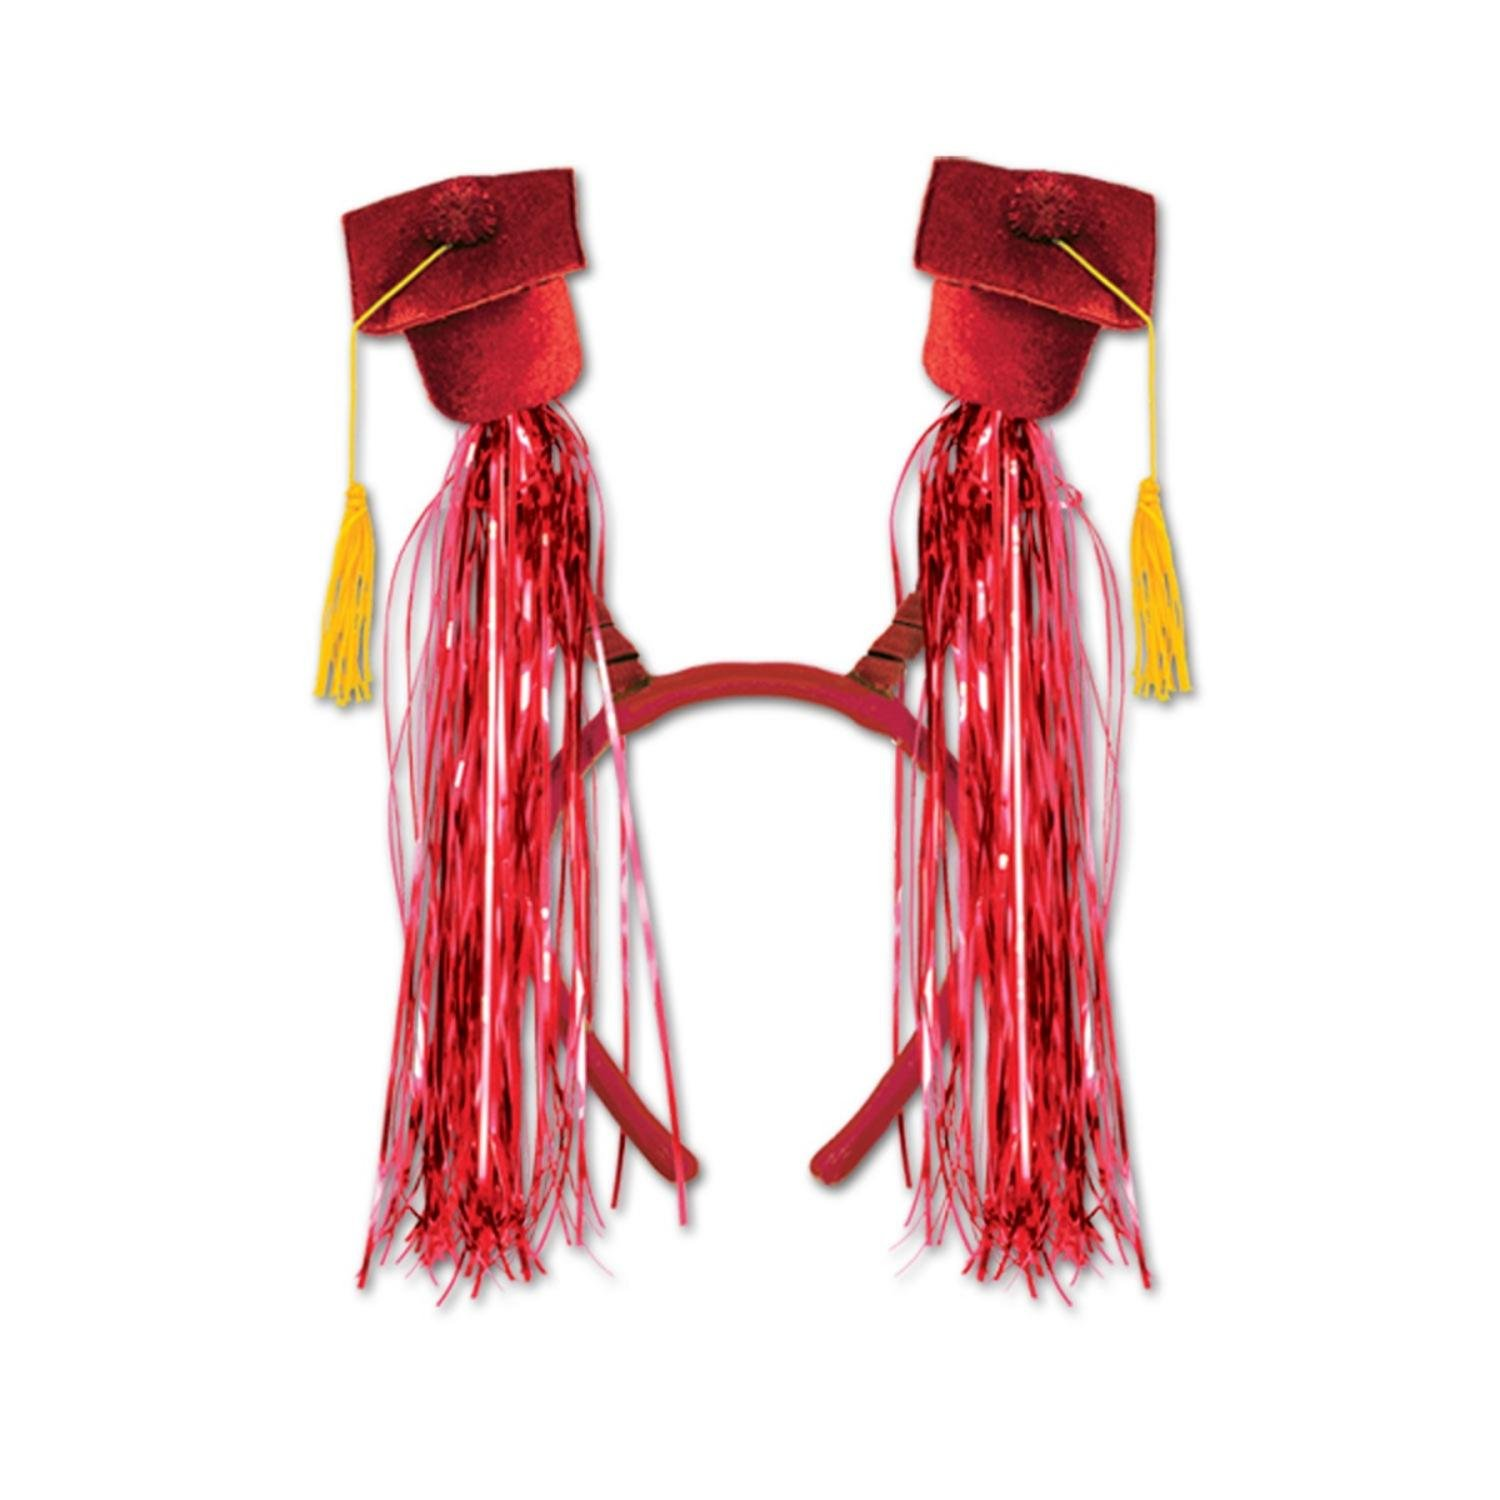 Club Pack of 12 Red Graduation Cap with Fringe Bopper Headband Party Favors by Party Central